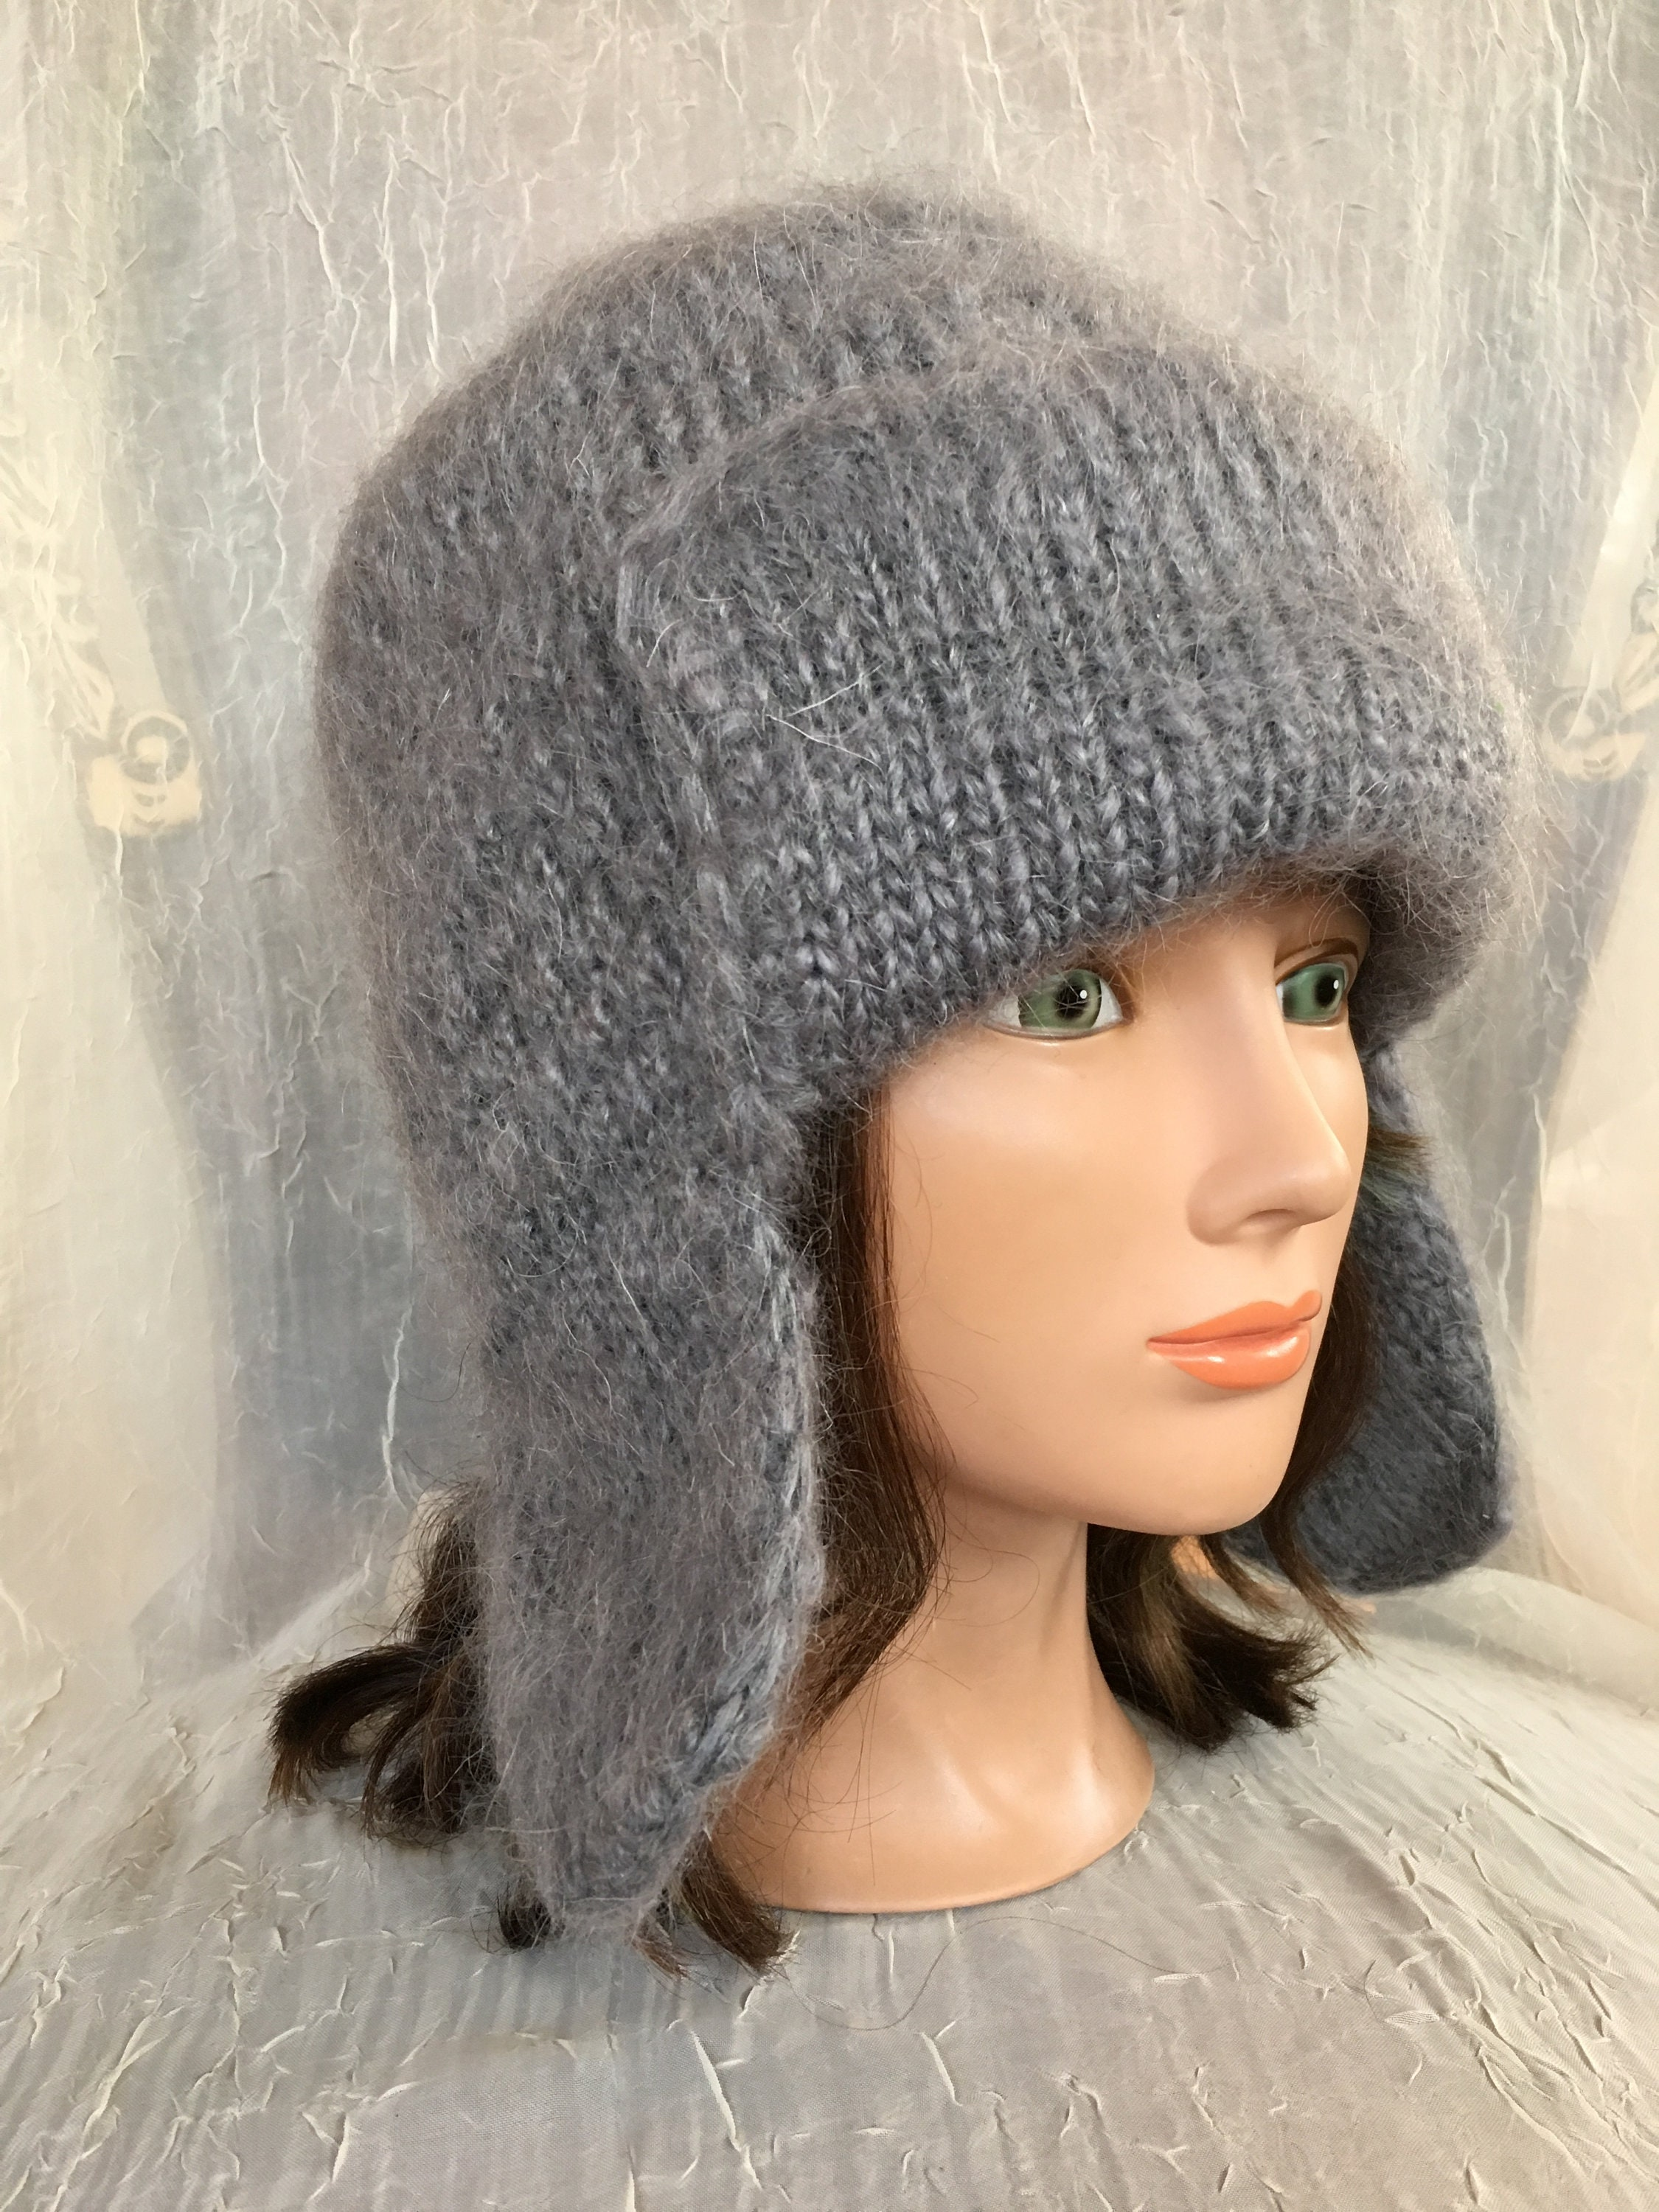 Knitted wool hat Russian hat goat down cashmere grey gray hat grey gray  felted flower warm wool winter hat 2495f16d769